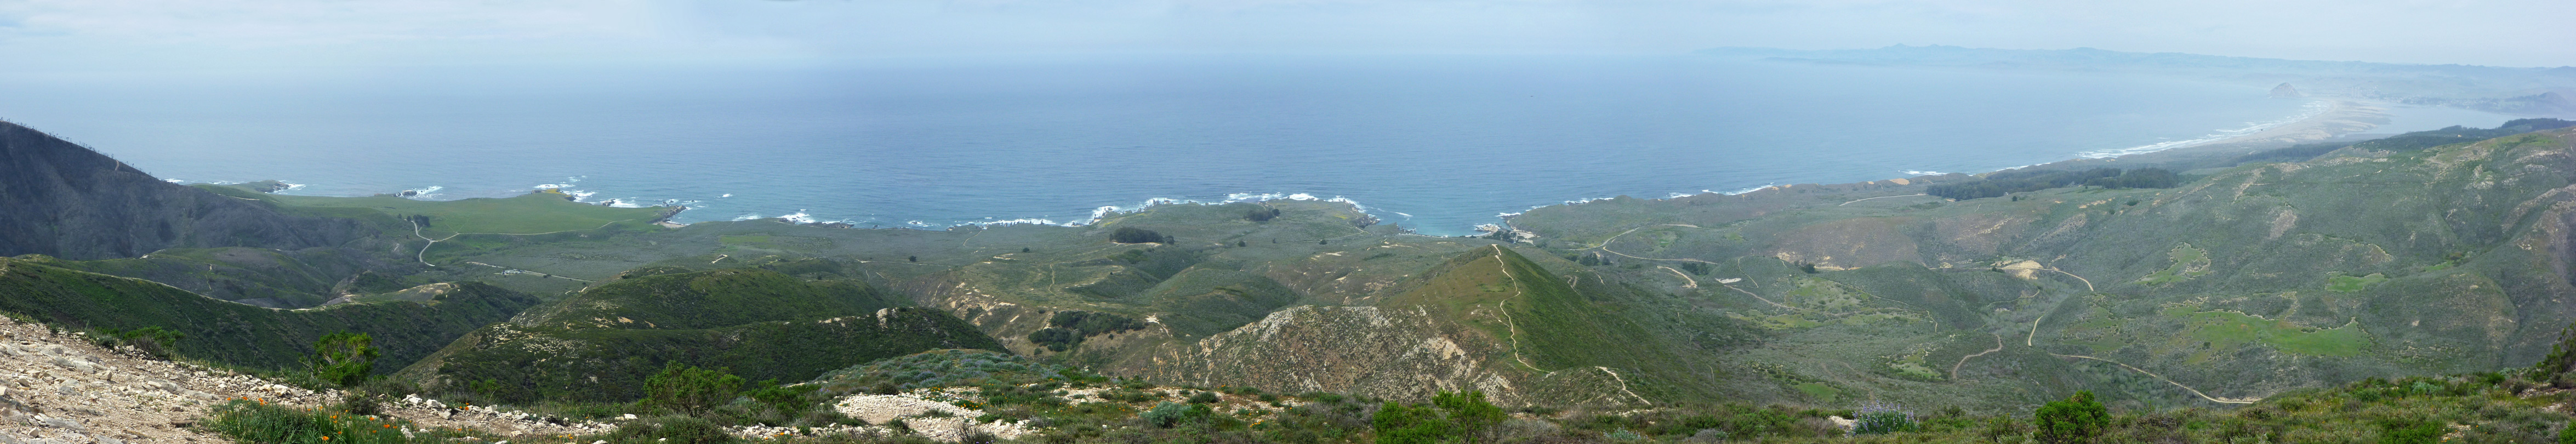 The Montana de Oro coastline, from the top of Valencia Peak